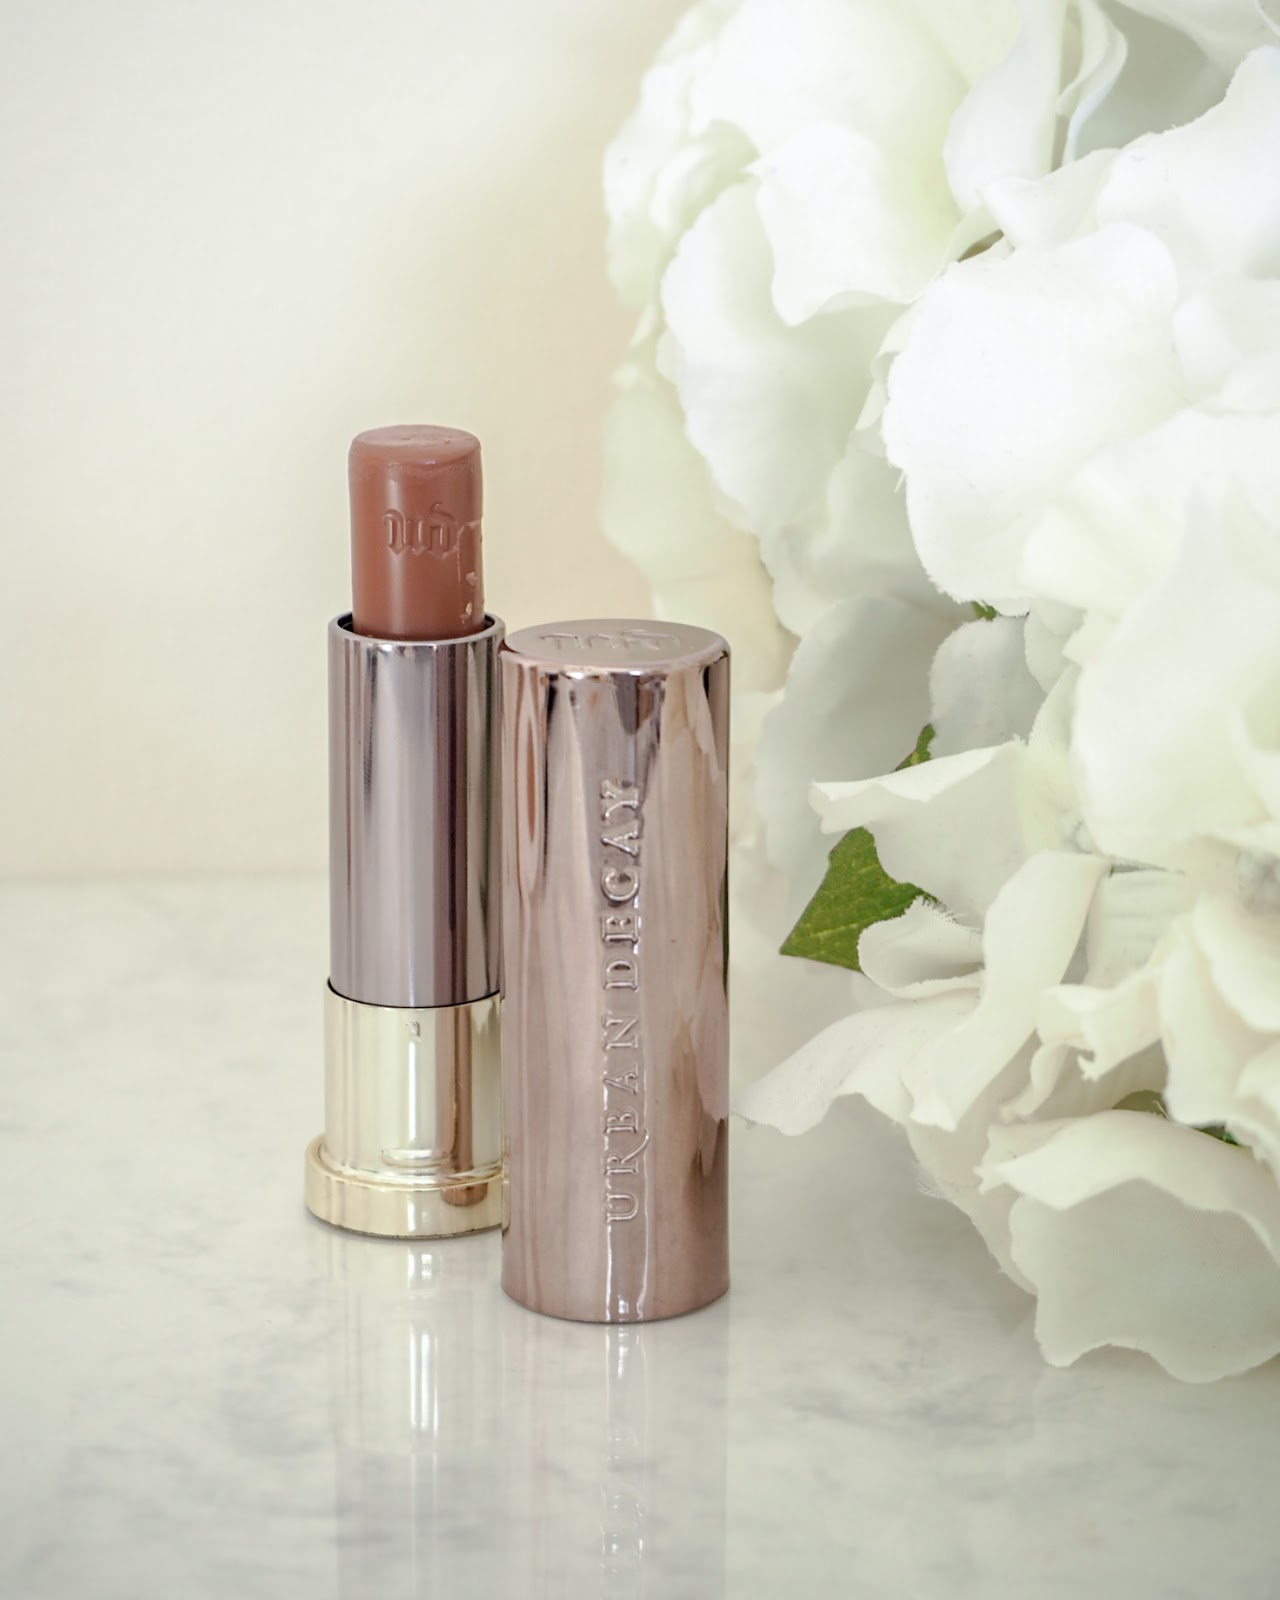 Urban Decay Comfort Matte Vice Lipstick in the shade 1993